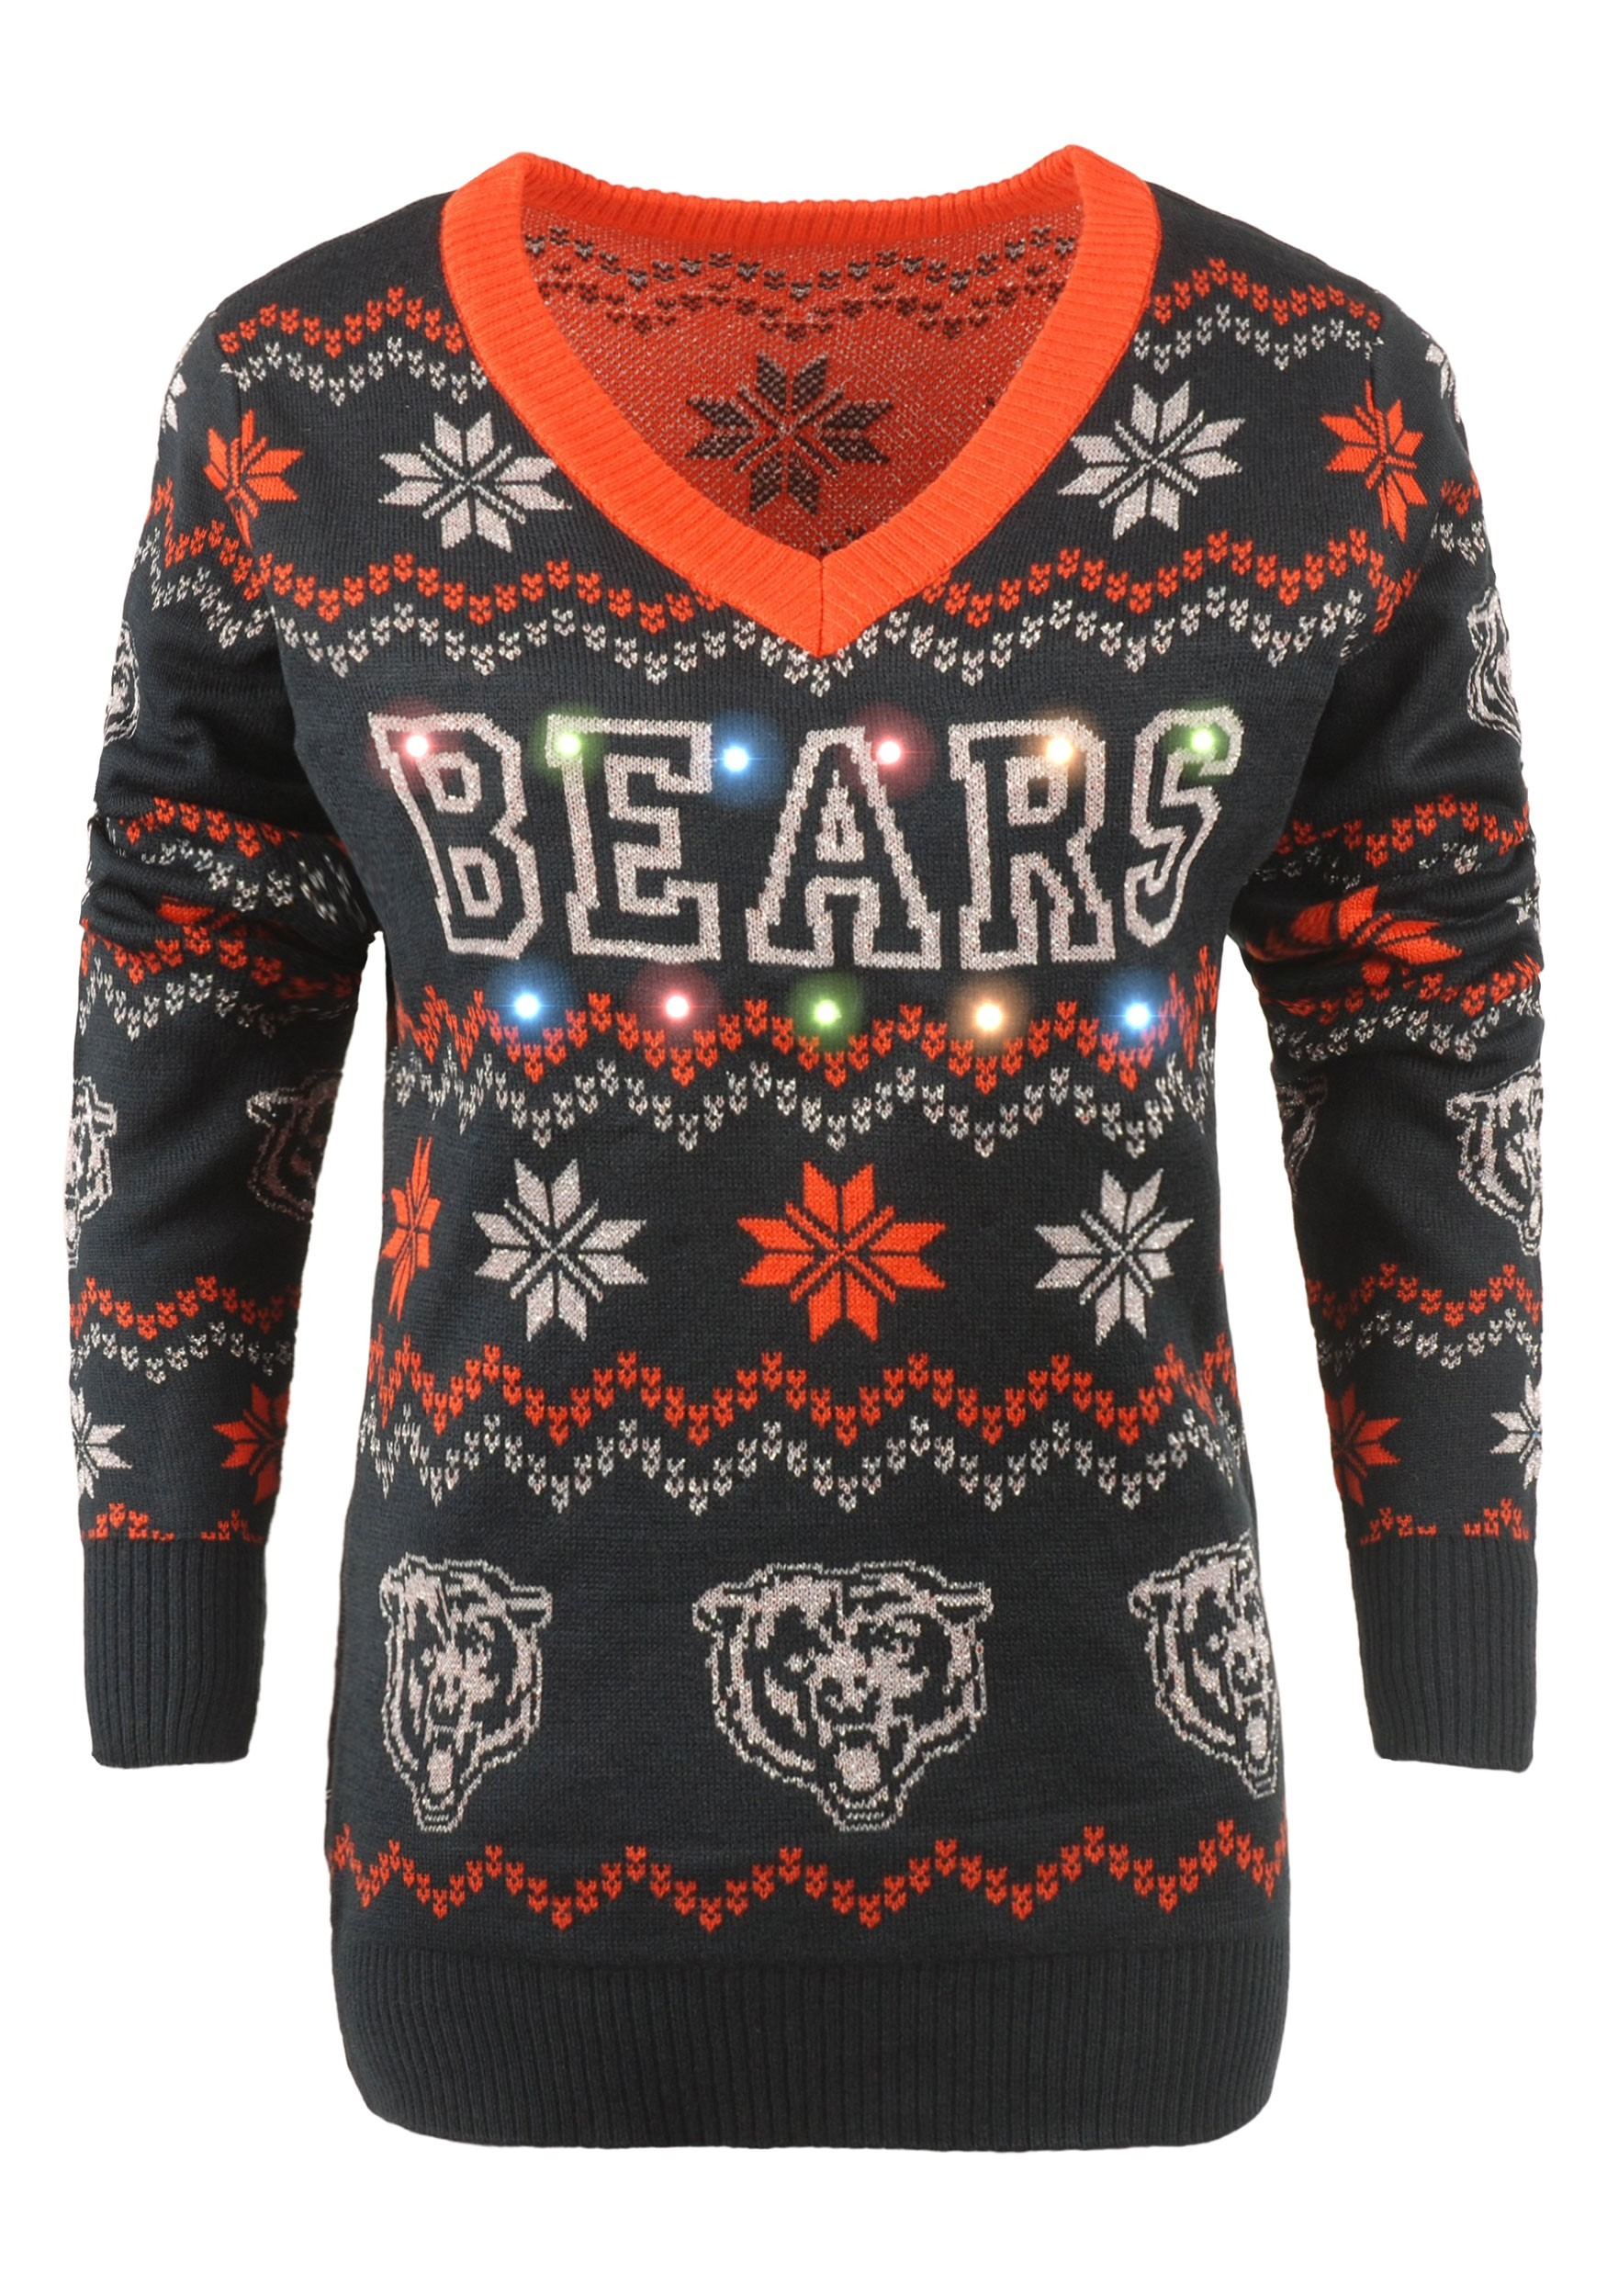 Chicago Bears Womens Light Up V Neck Bluetooth Ugly Christmas Sweater